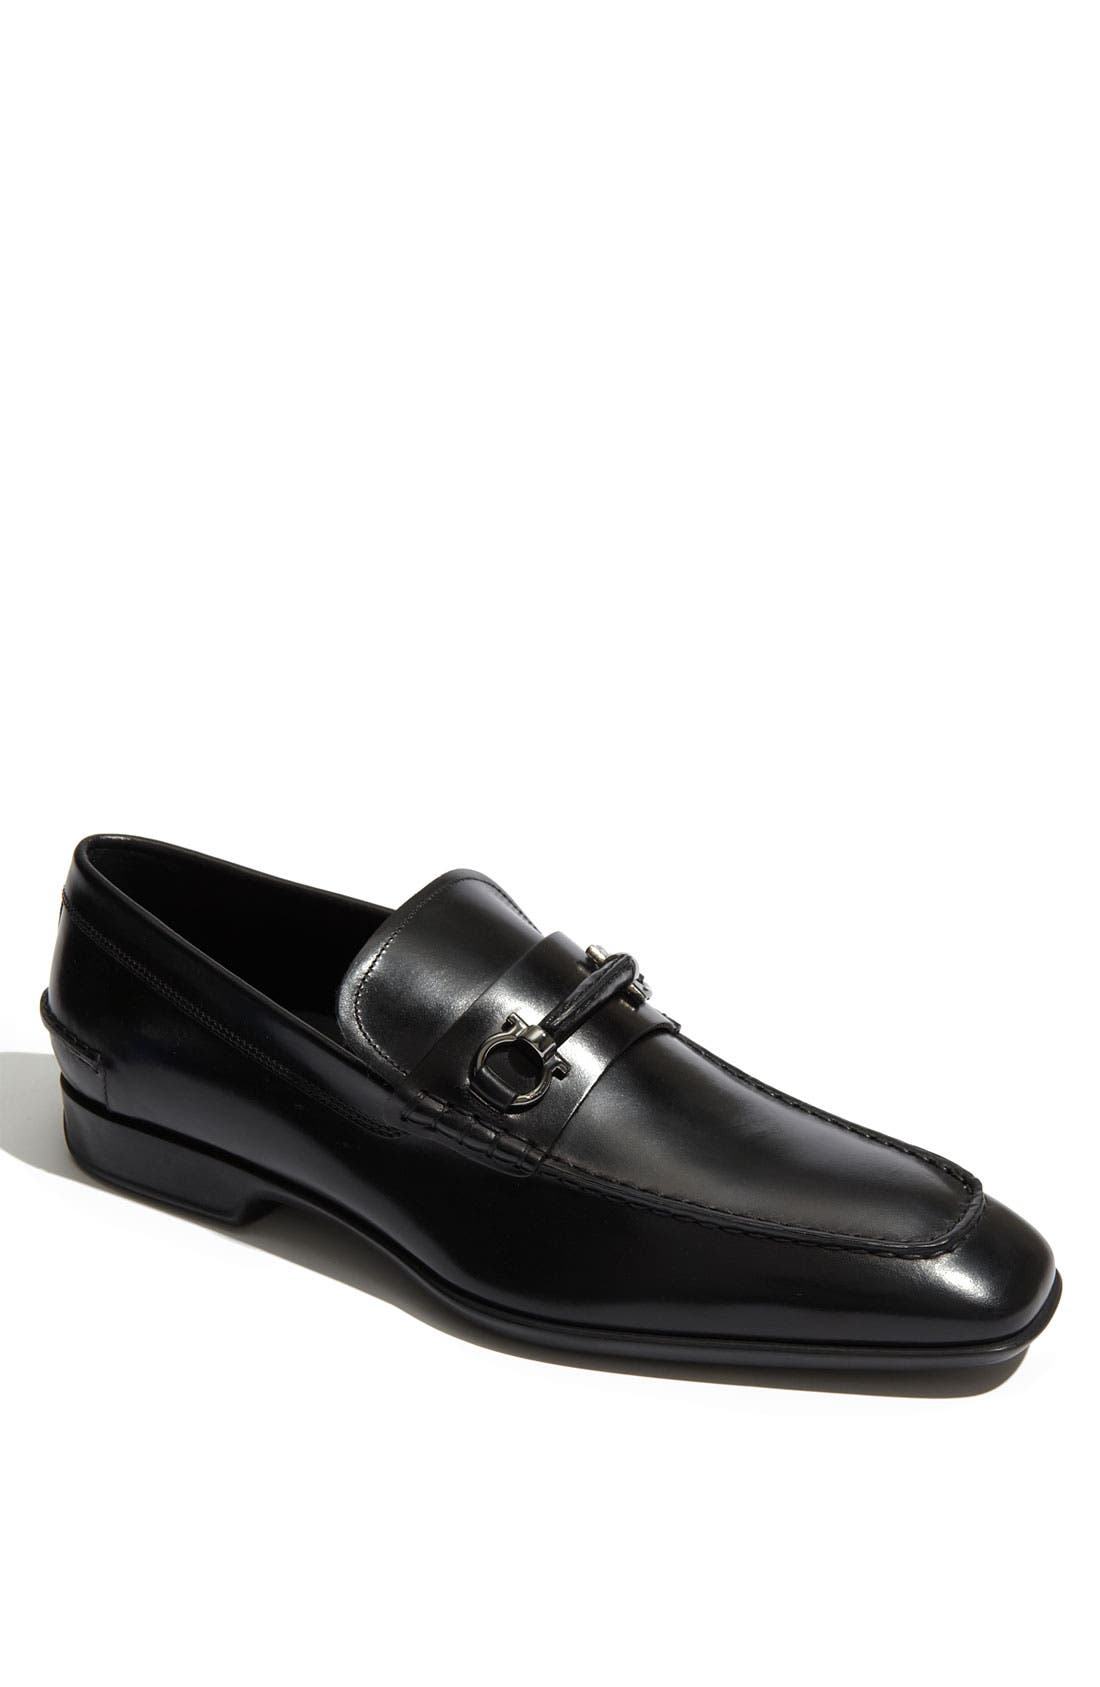 Main Image - Salvatore Ferragamo 'Cantino' Loafer